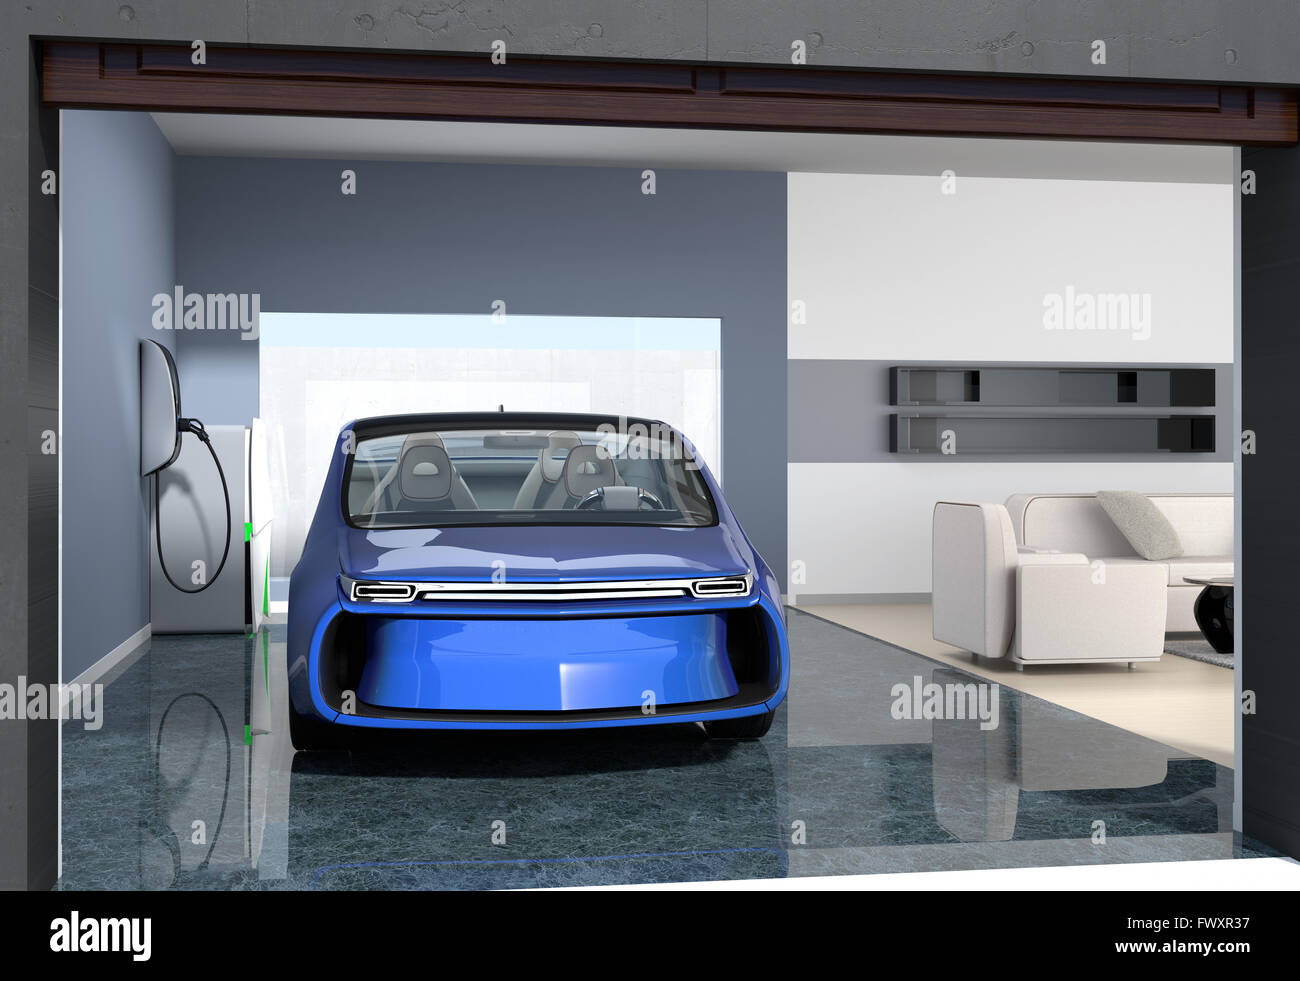 voiture lectrique bleu parc dans garage moderne le garage se connecter avec salon qui montrent. Black Bedroom Furniture Sets. Home Design Ideas